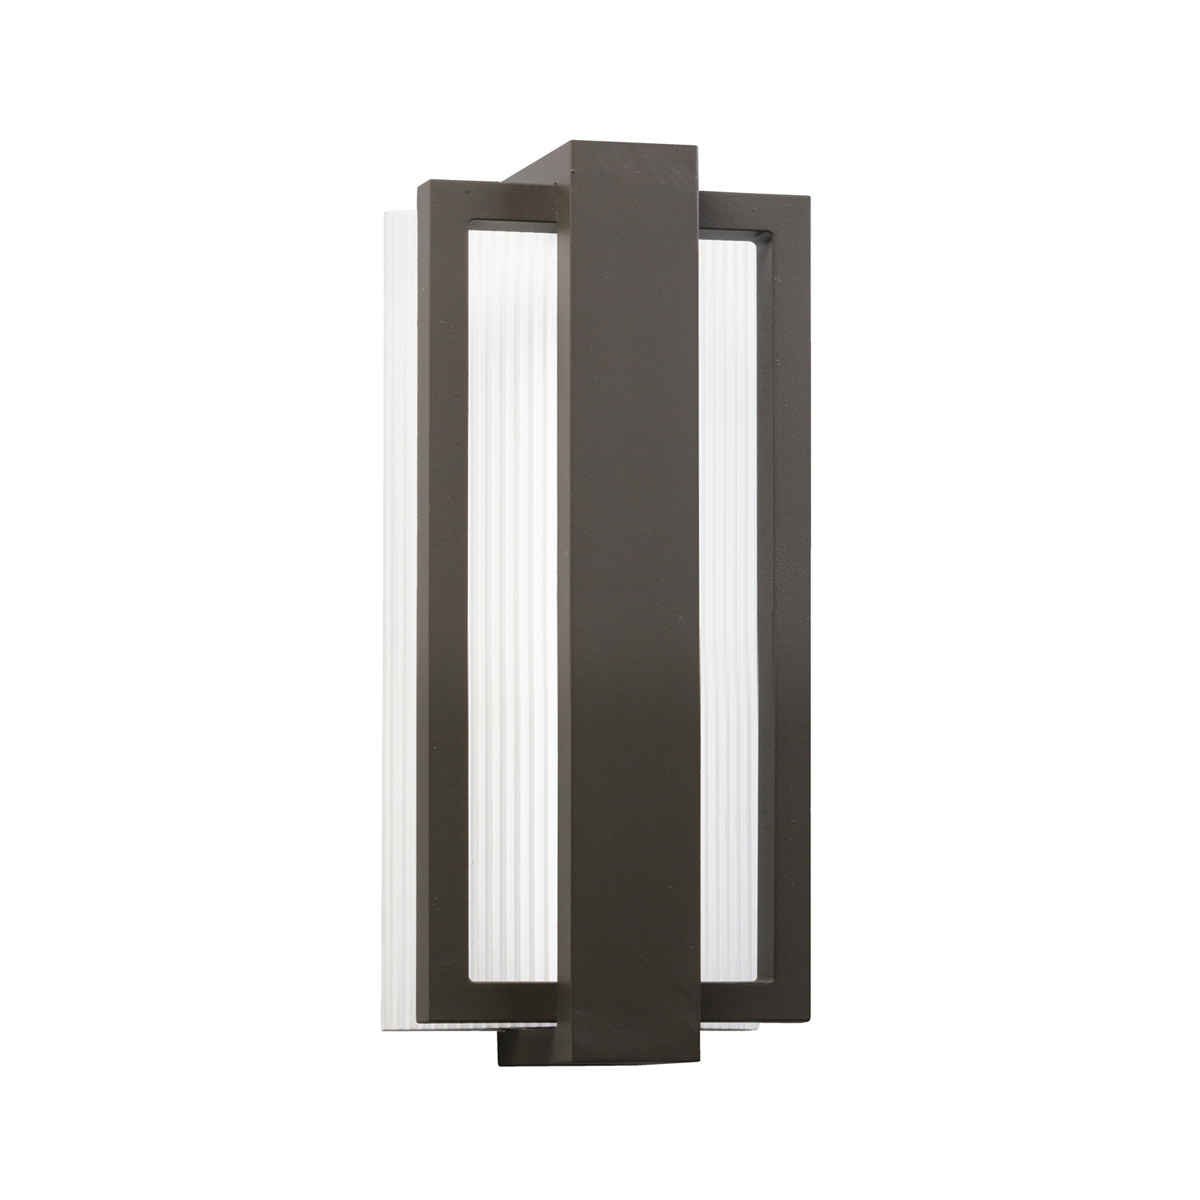 Architectural Led Wall Sconces : Kichler Lighting (49492AZ) Sedo Small Outdoor LED Wall Sconce in Architectural Bronze